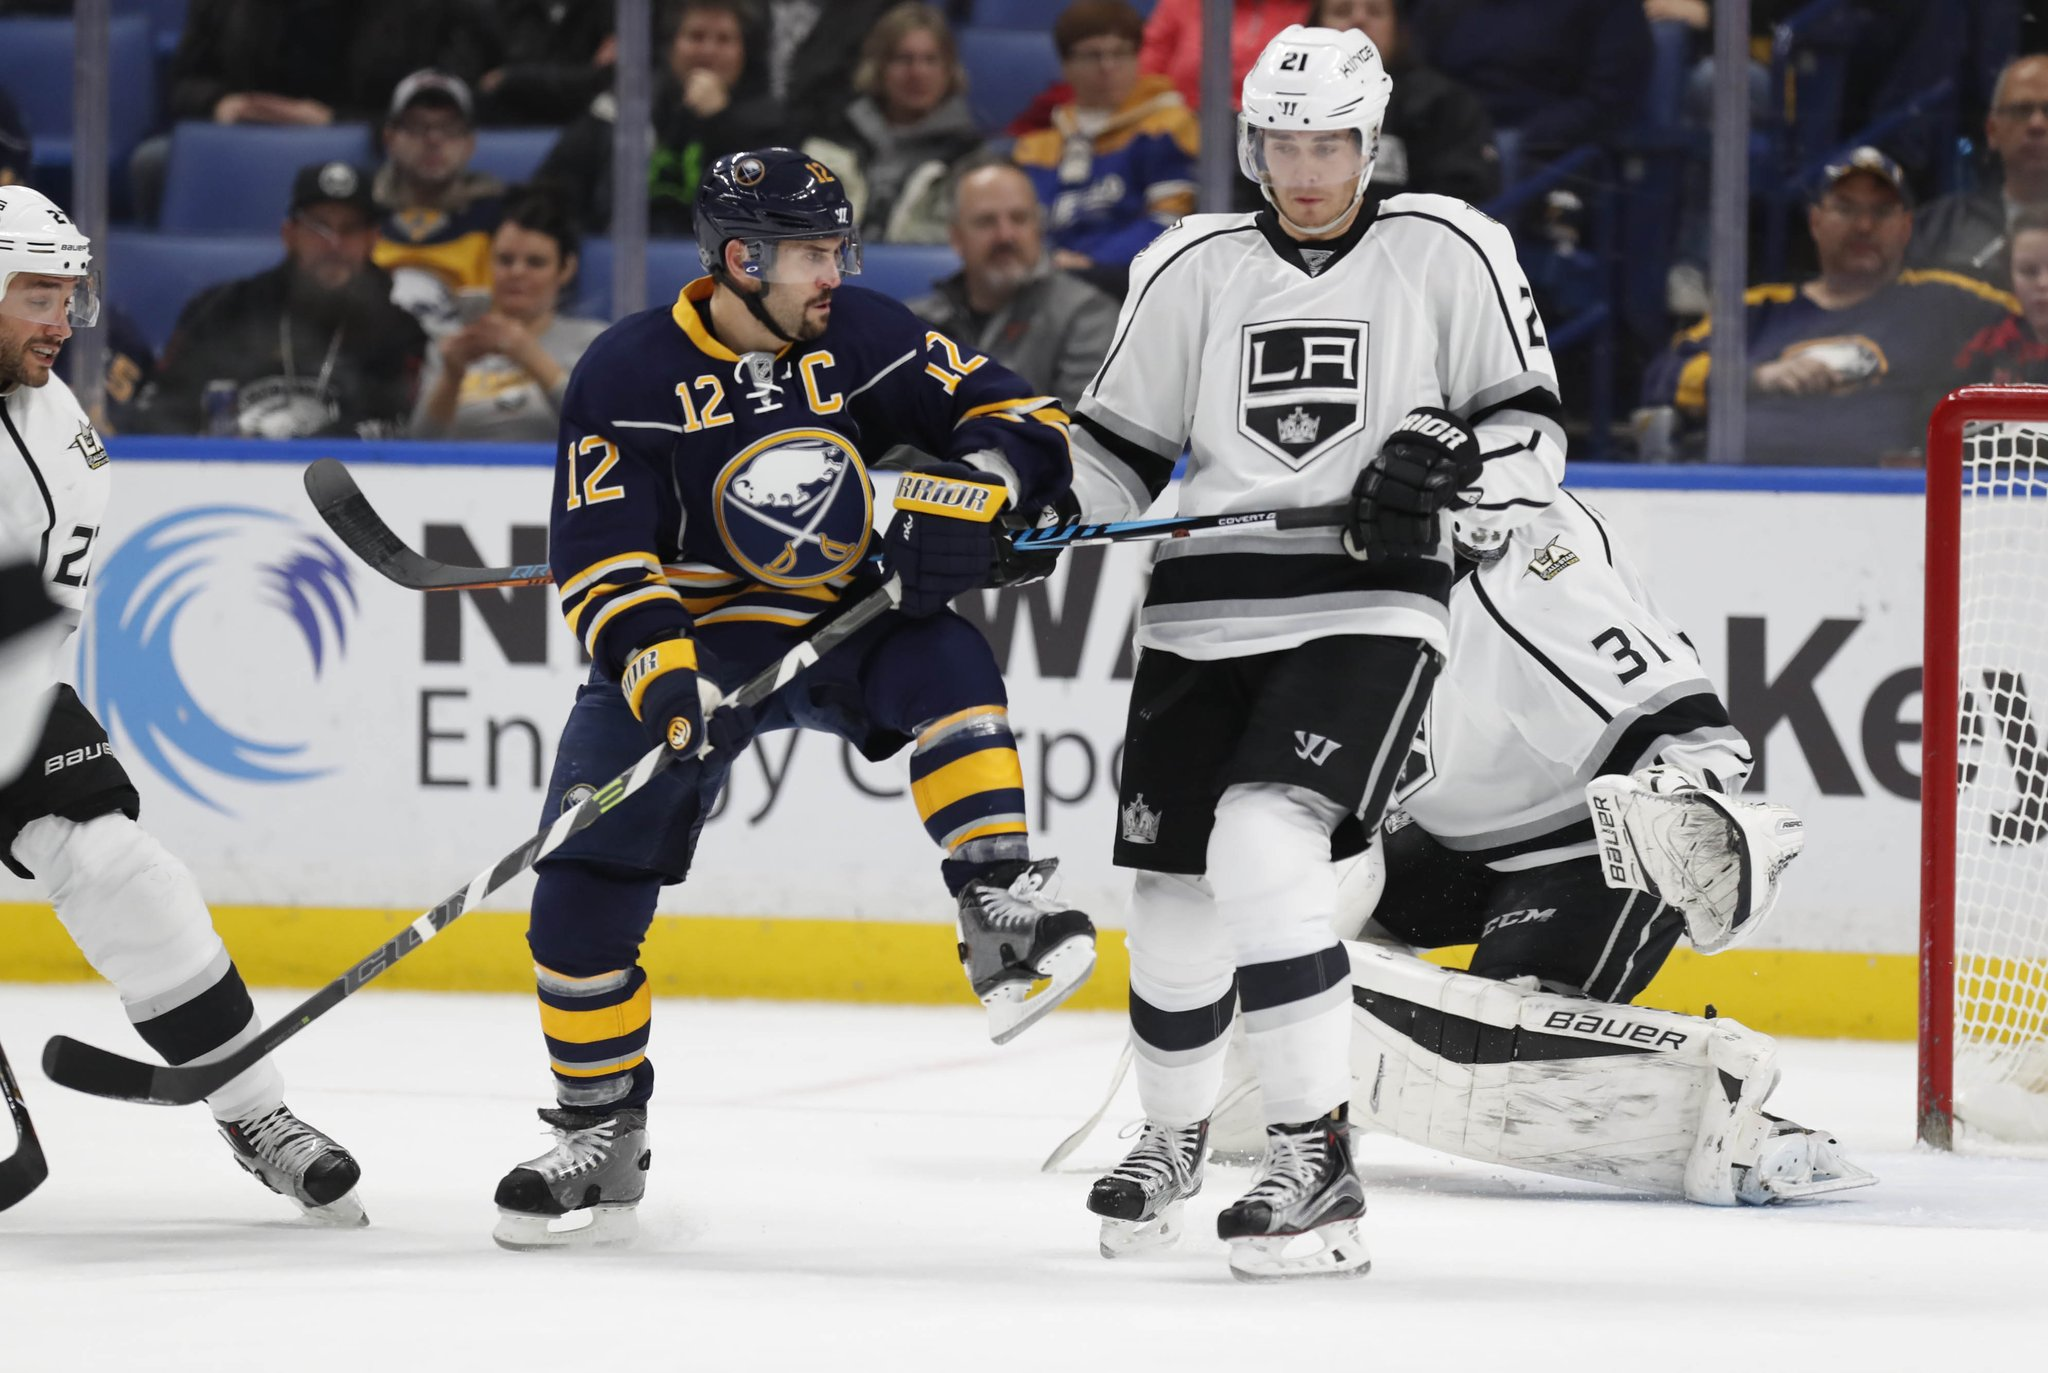 Sabres captain Brian Gionta  will play his 1,000th NHL game Monday night. (Harry Scull Jr./Buffalo News)